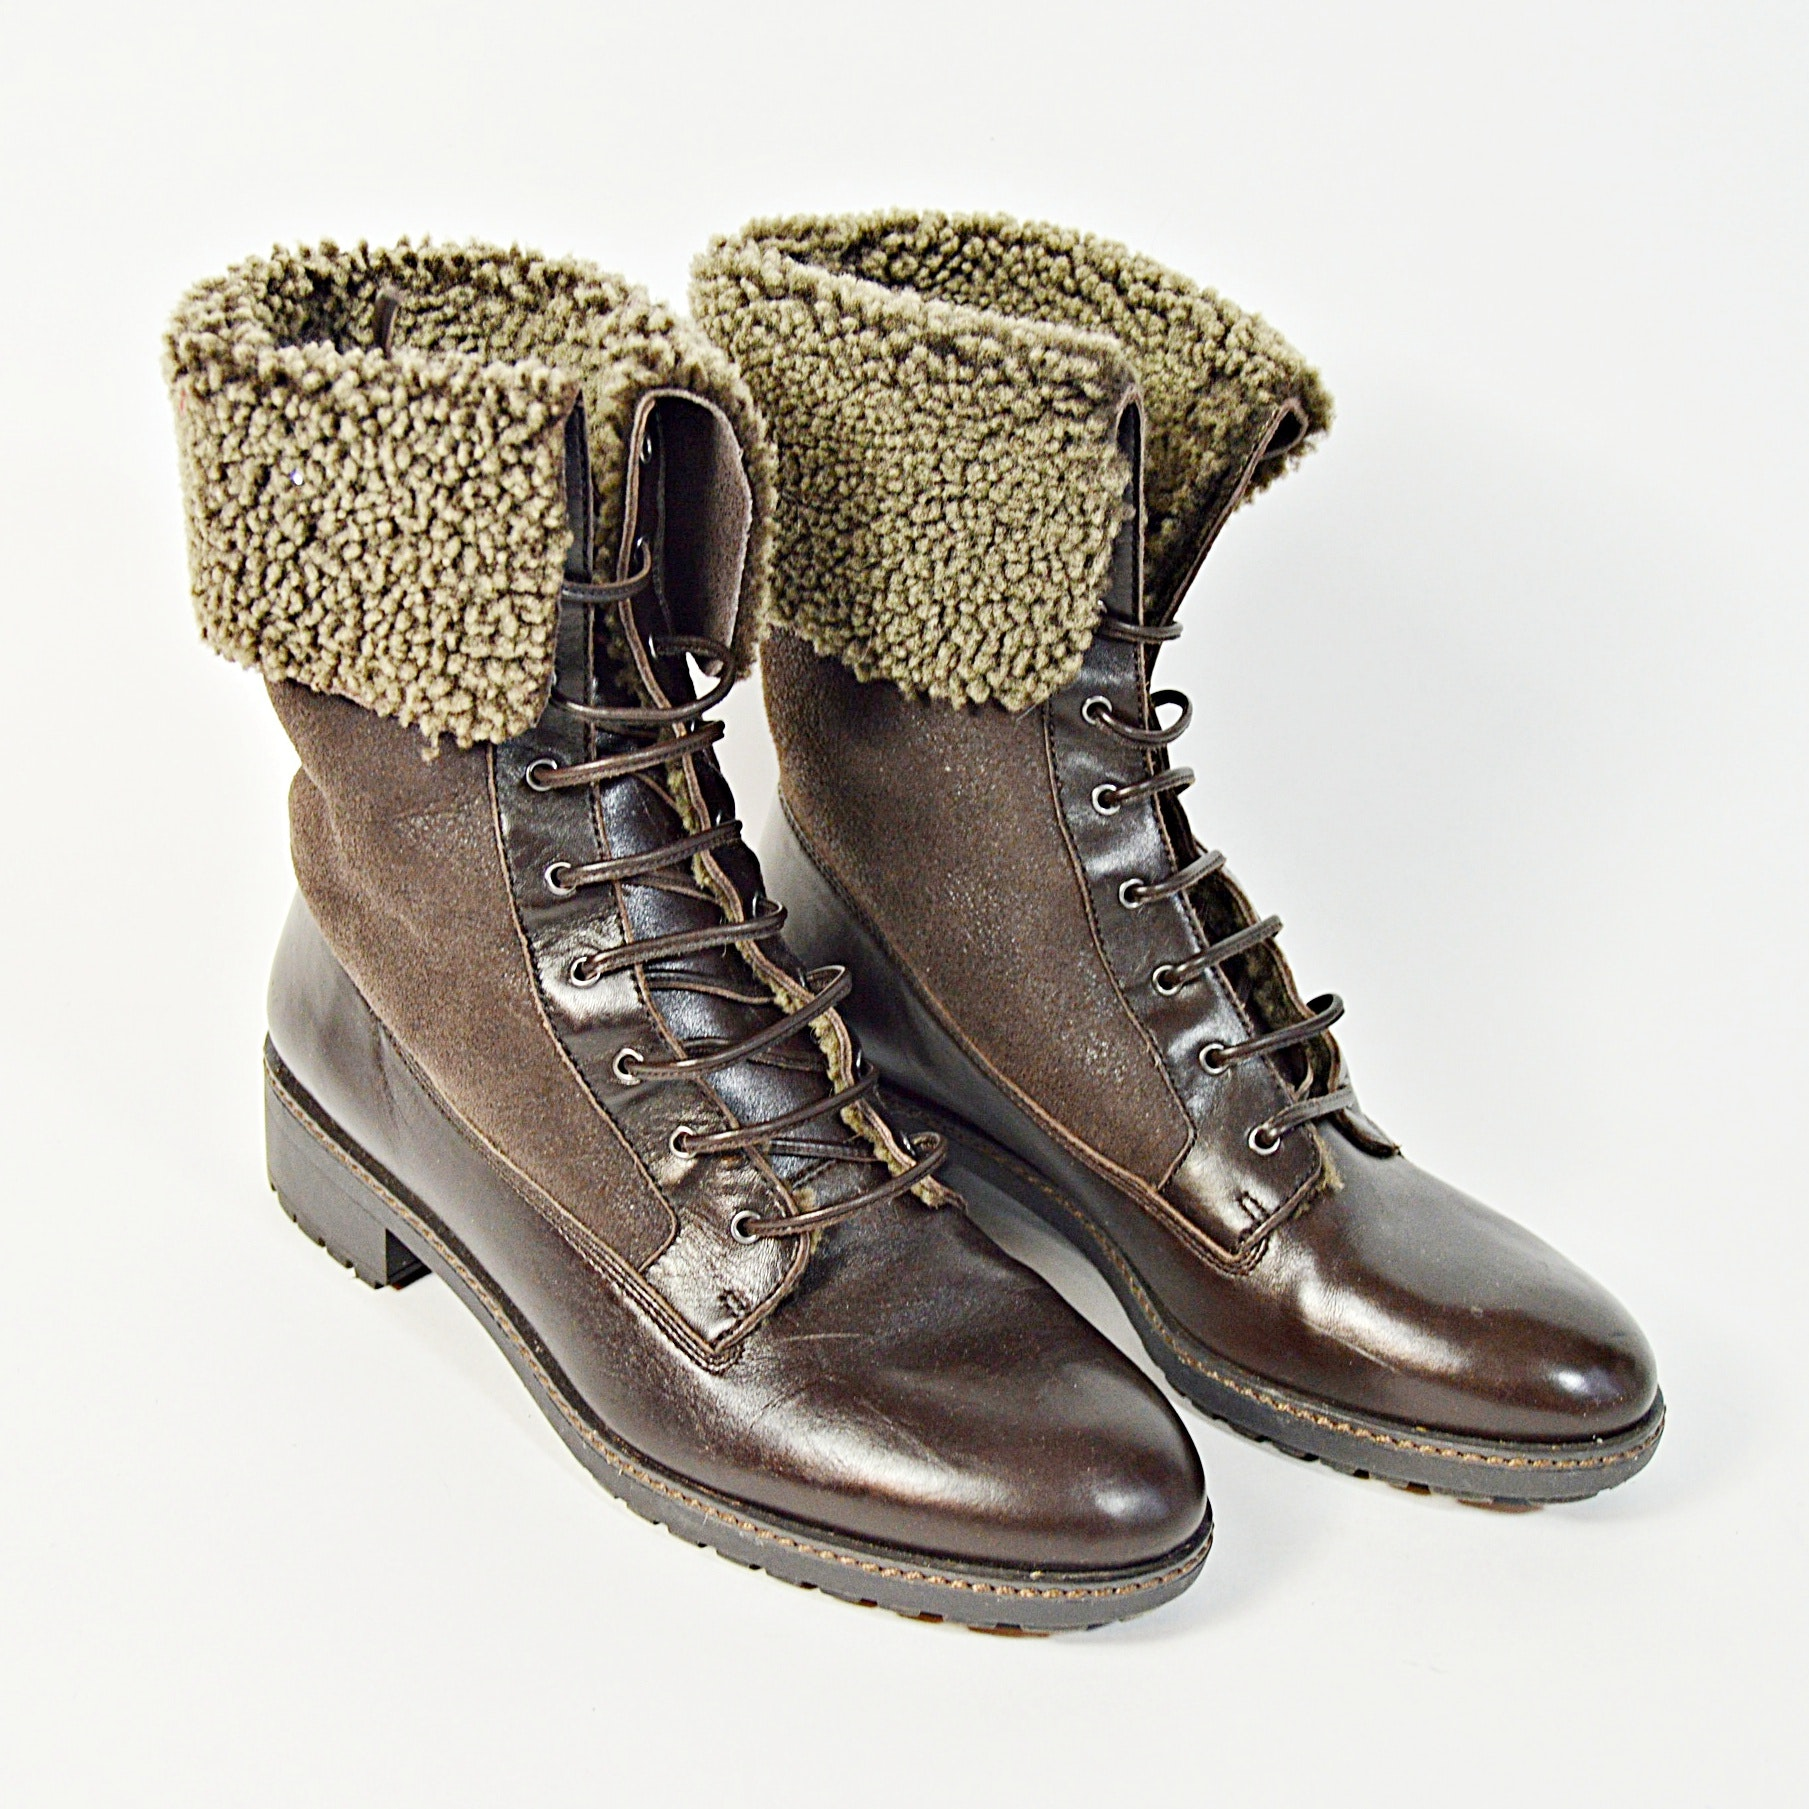 Via Spiga Brown Leather Boots, 9M